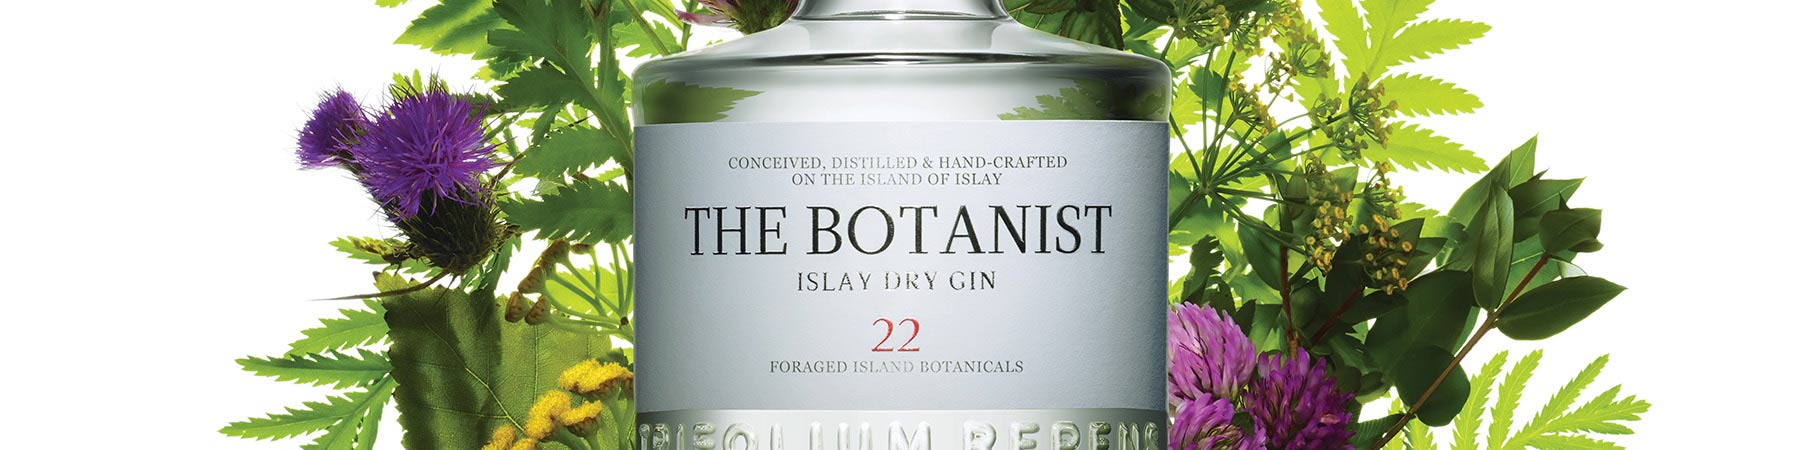 pano-marques-the-botanist